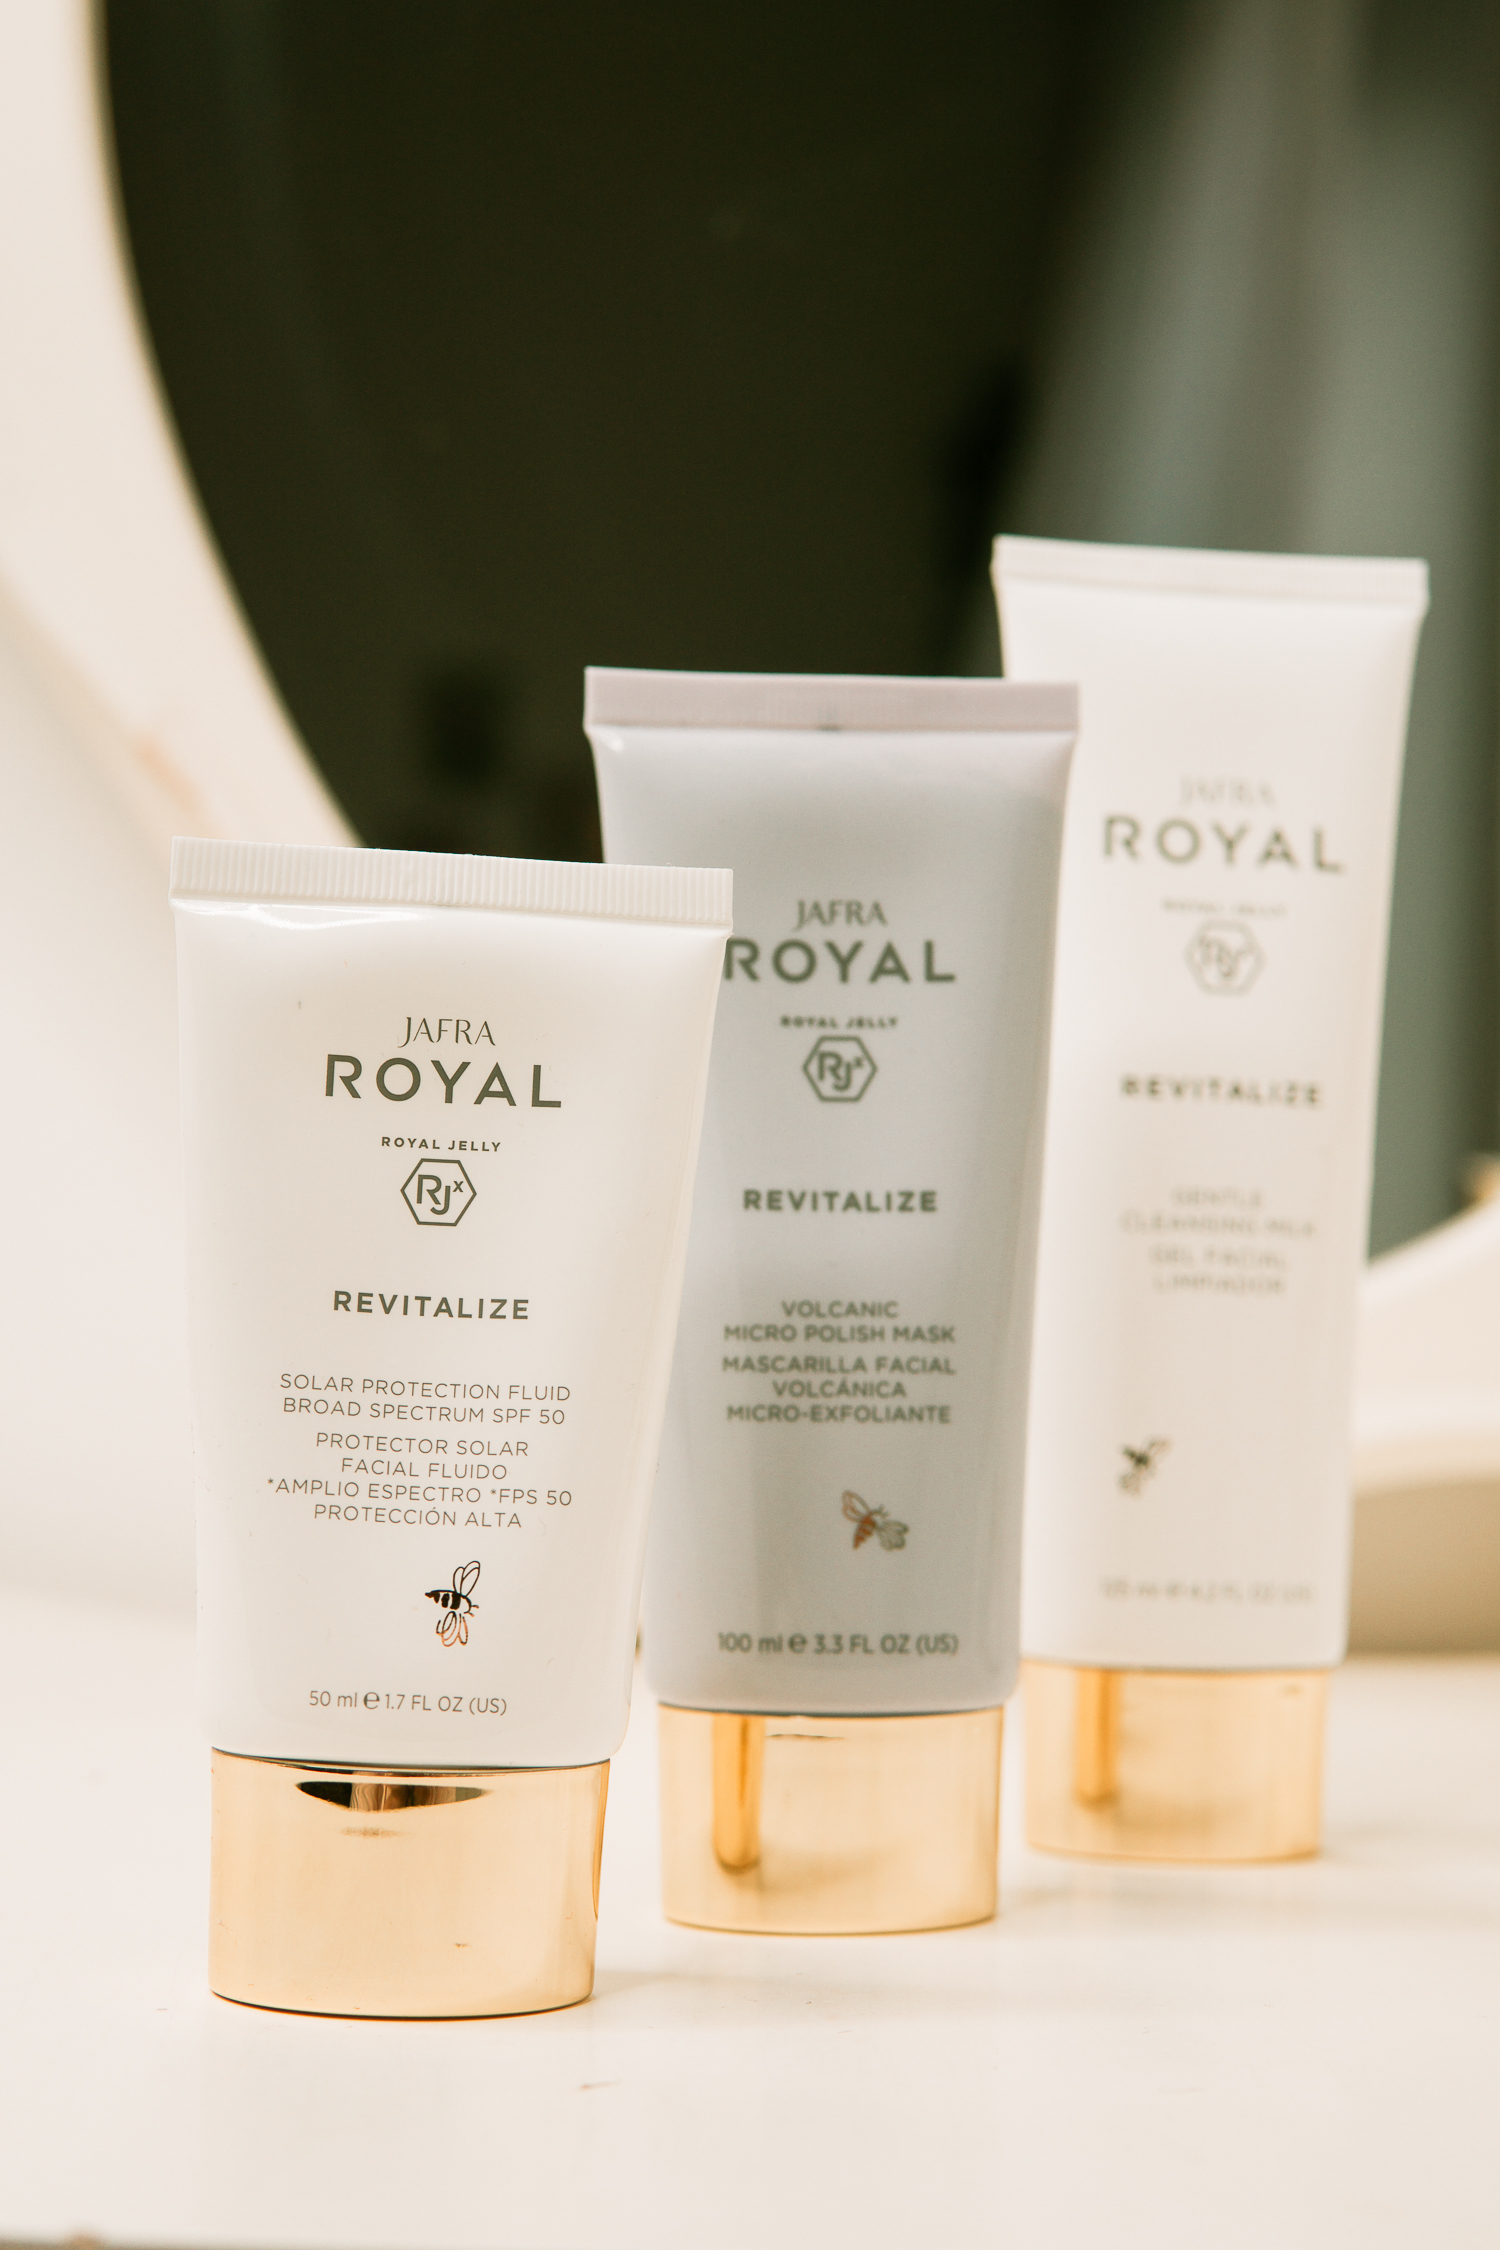 JAFRA ROYAL Revitalize